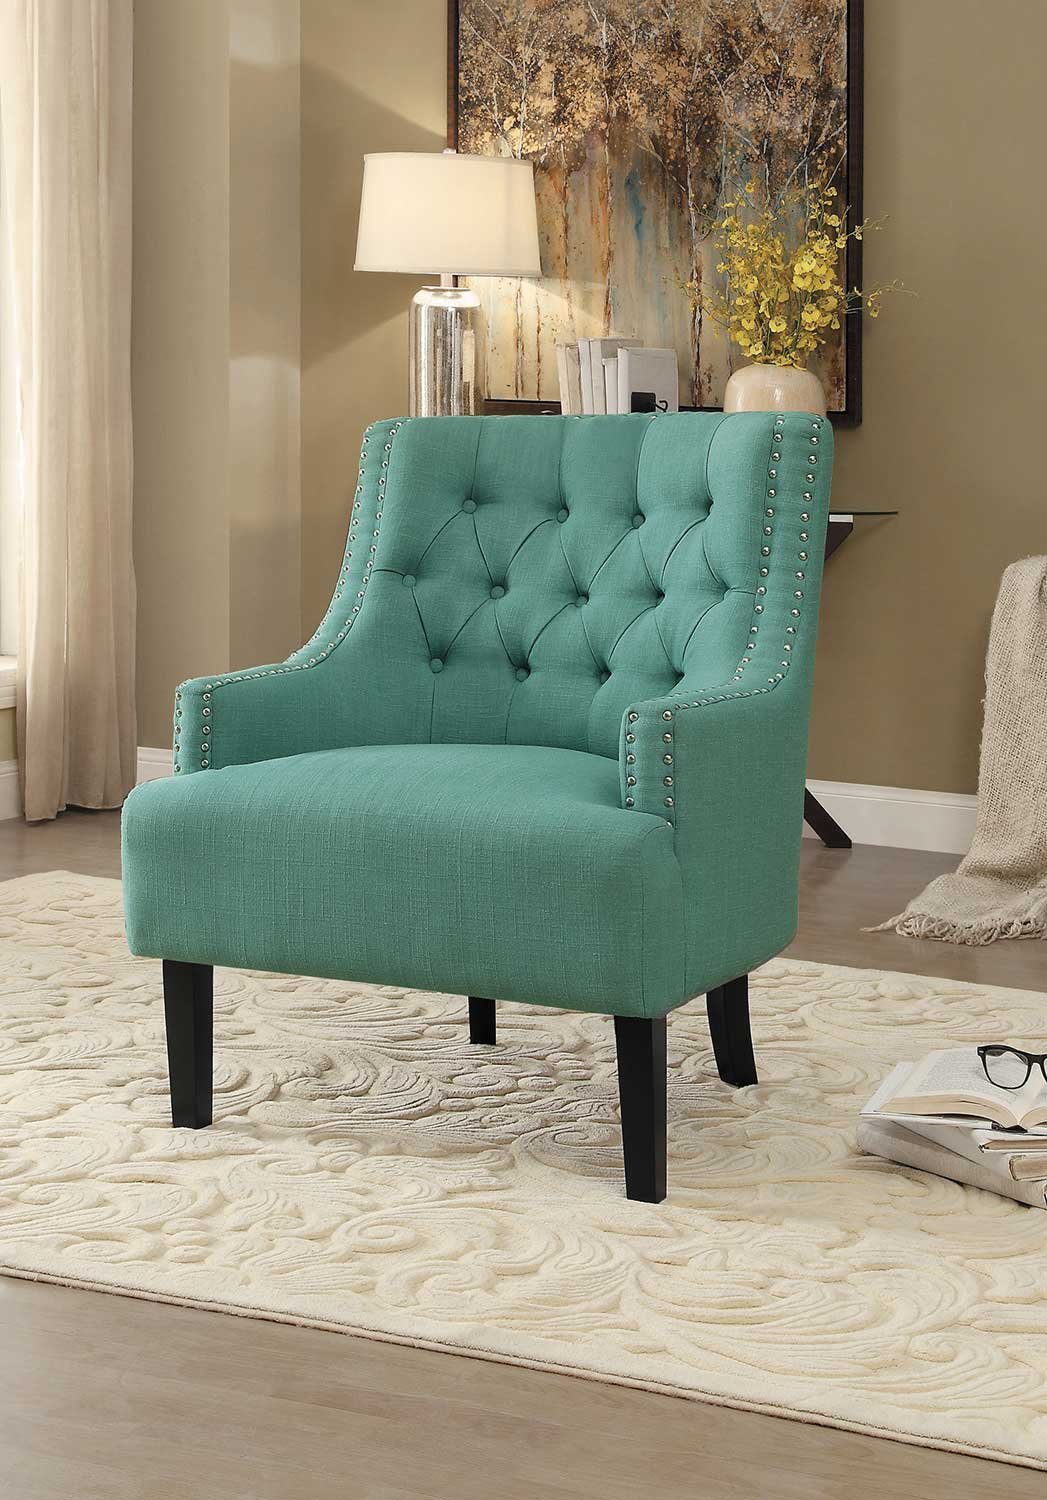 Homelegance Charisma Accent Chair - Teal